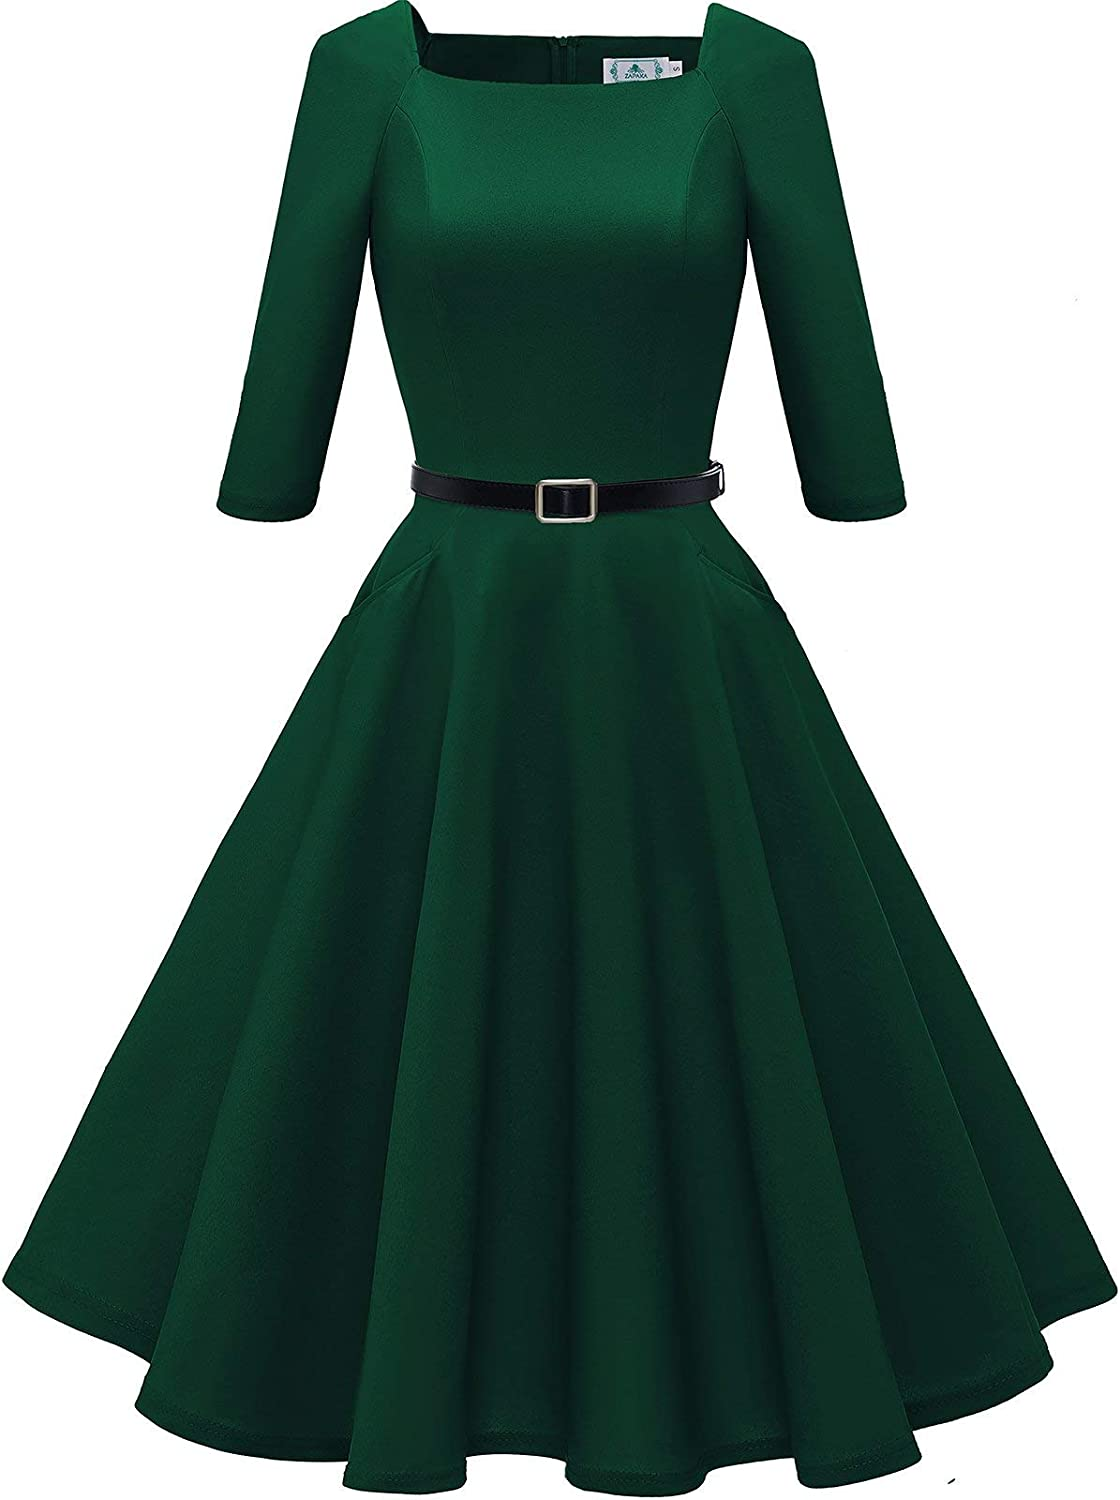 ZAPAKA Women's Vintage Square Neck 3/4 Sleeve Cocktail Party Flare Midi Pockets Dress with Belt